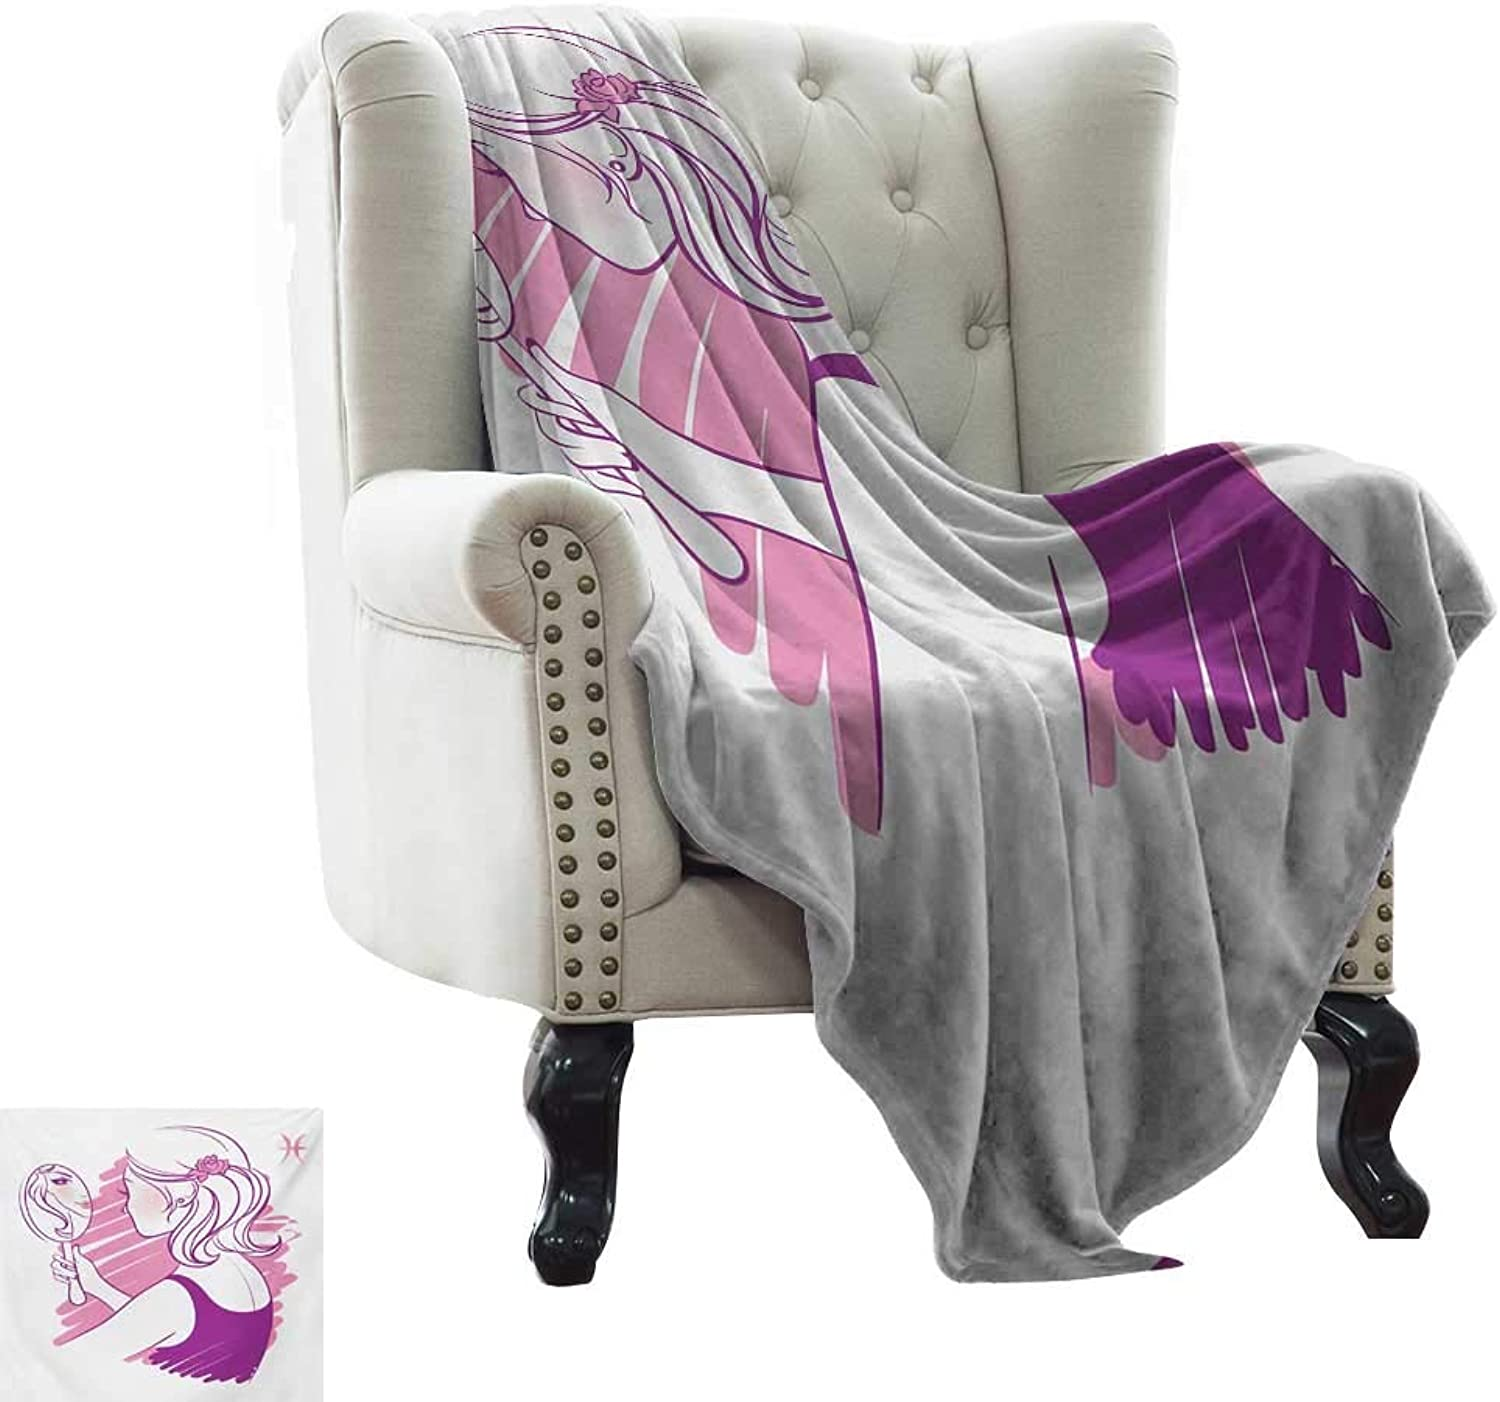 LsWOW Summer Blanket Zodiac Gemini,Young Teenage Girl on Pink Looking at Herself in The Mirror,Purple Pale Pink and White Soft, Fuzzy, Cozy, Lightweight Blankets 50 x60